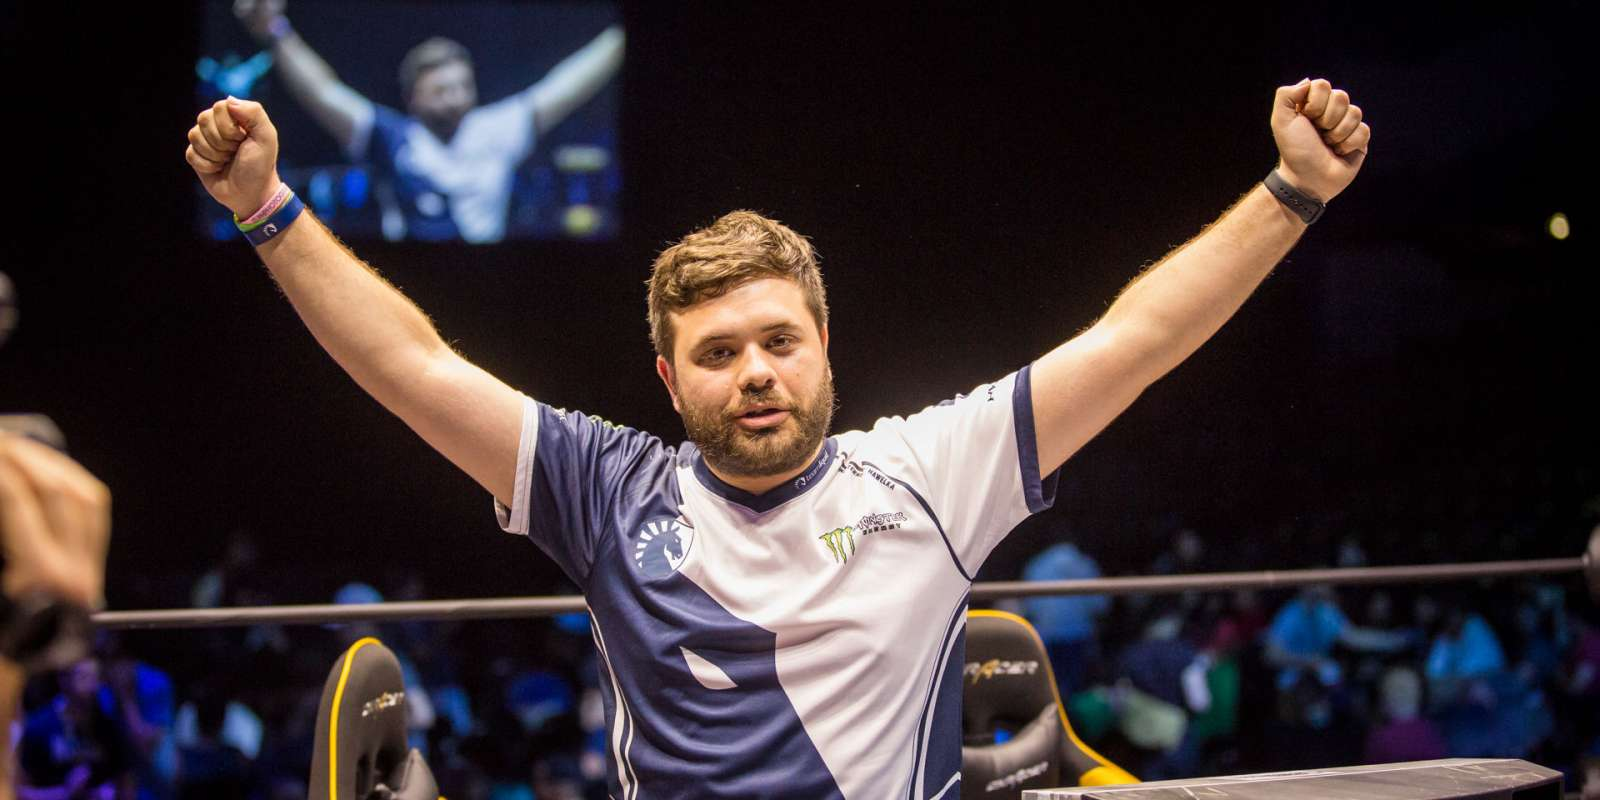 Photos of Team Liquid's Smash Brothers Melee and Street Fighter players